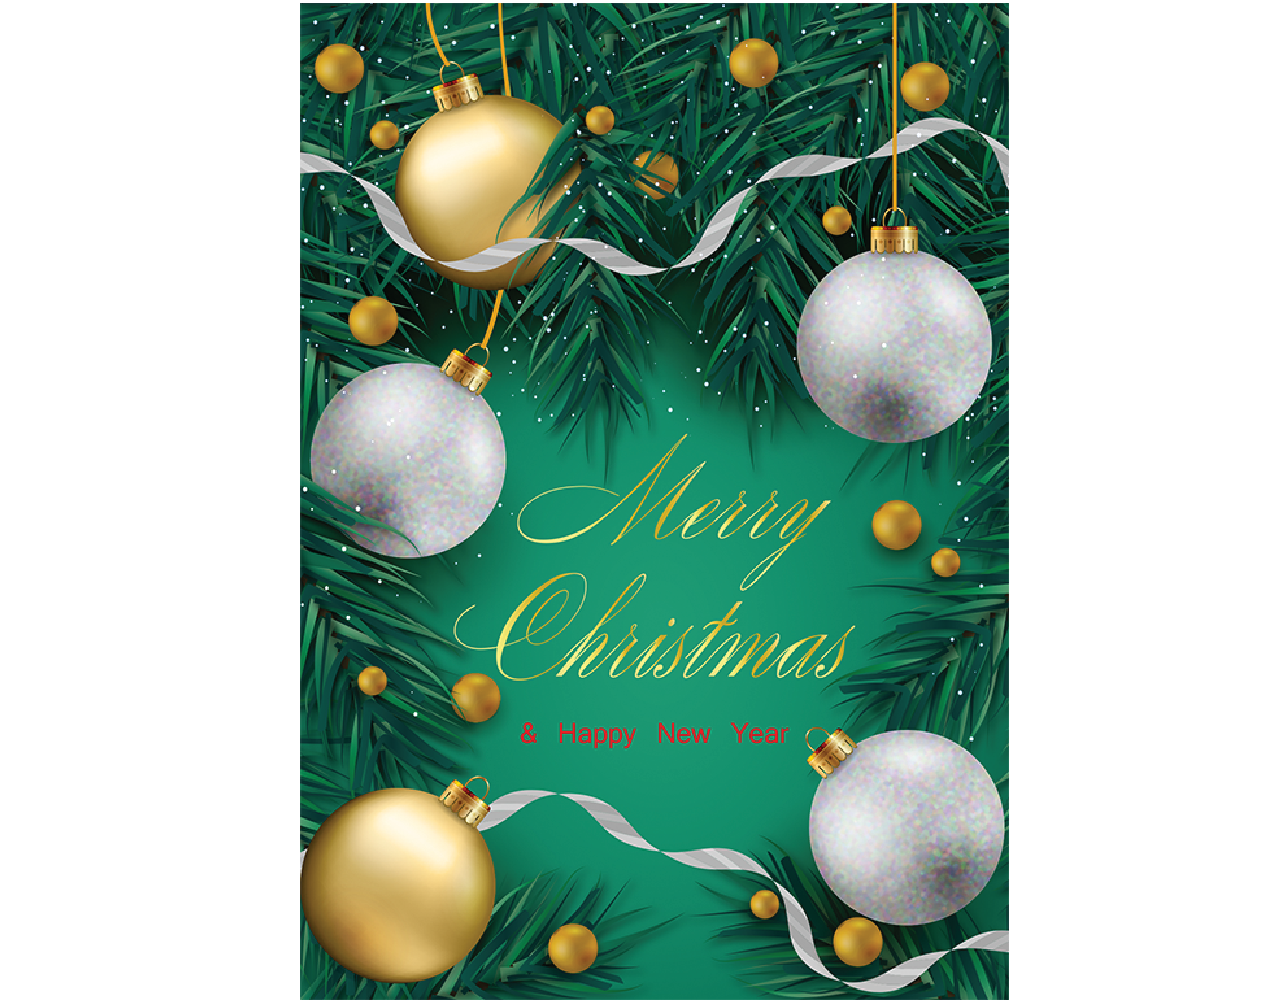 christmas card 5×7 inch GN.6008 ฿14.00